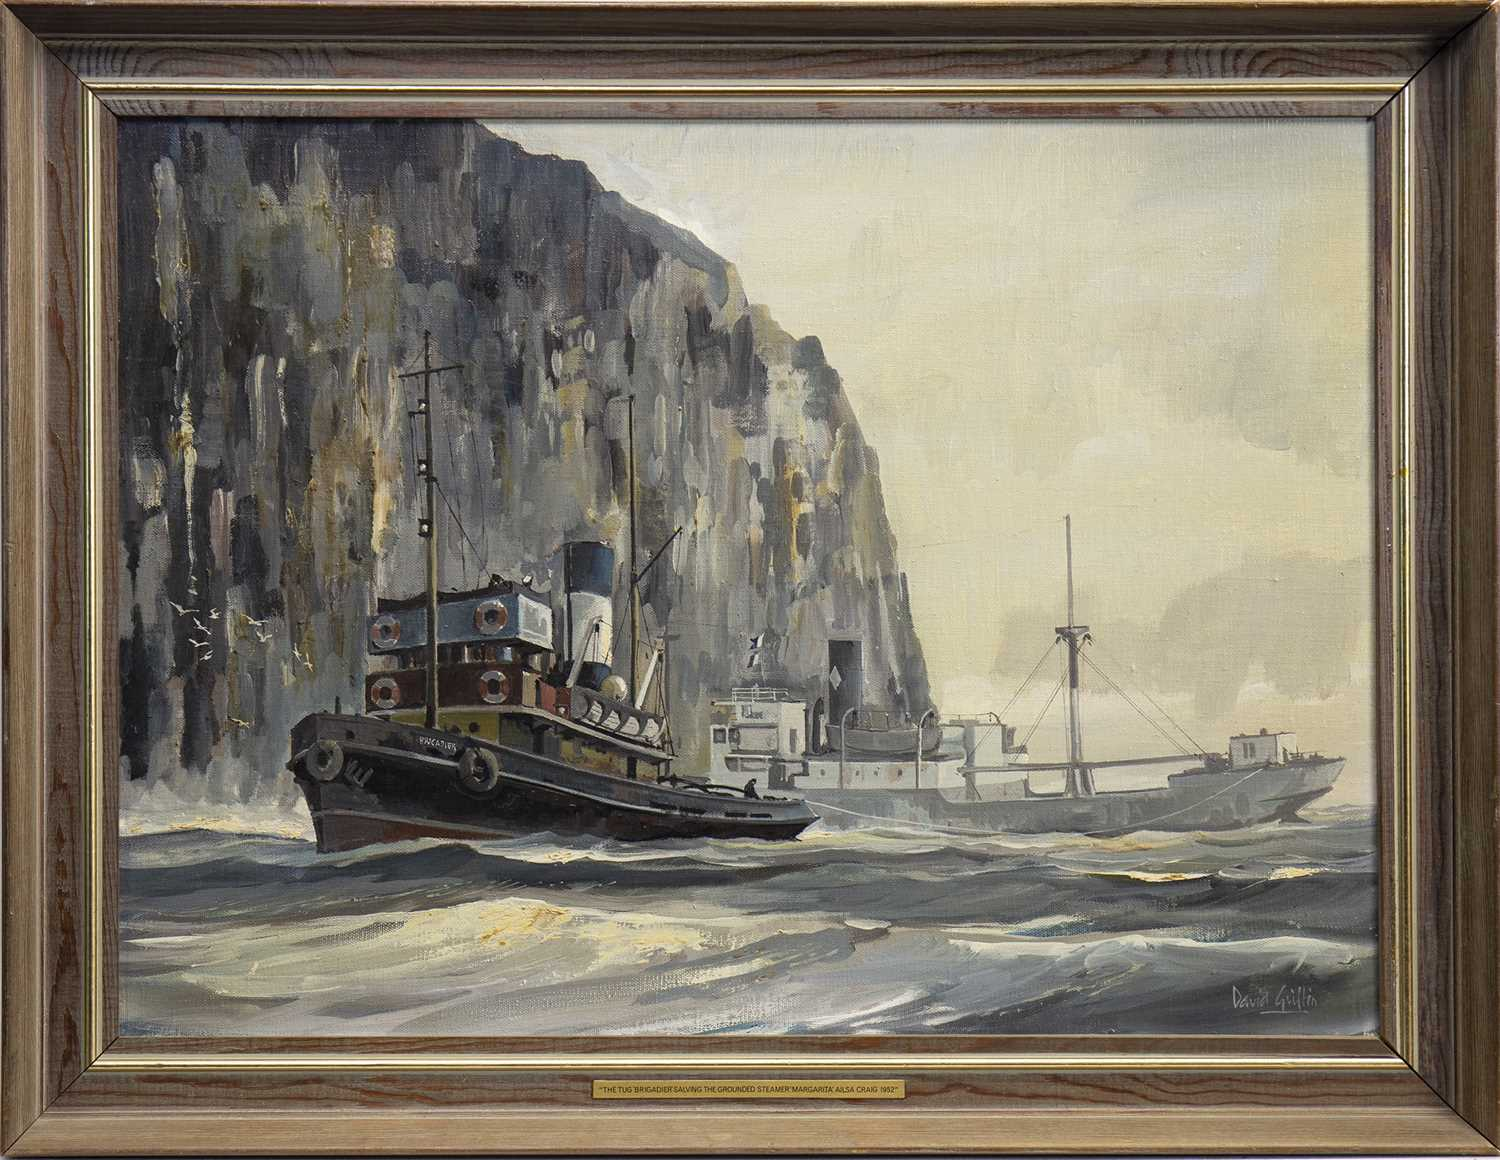 Lot 433-THE TUG, AN OIL BY DAVID GRIFFIN